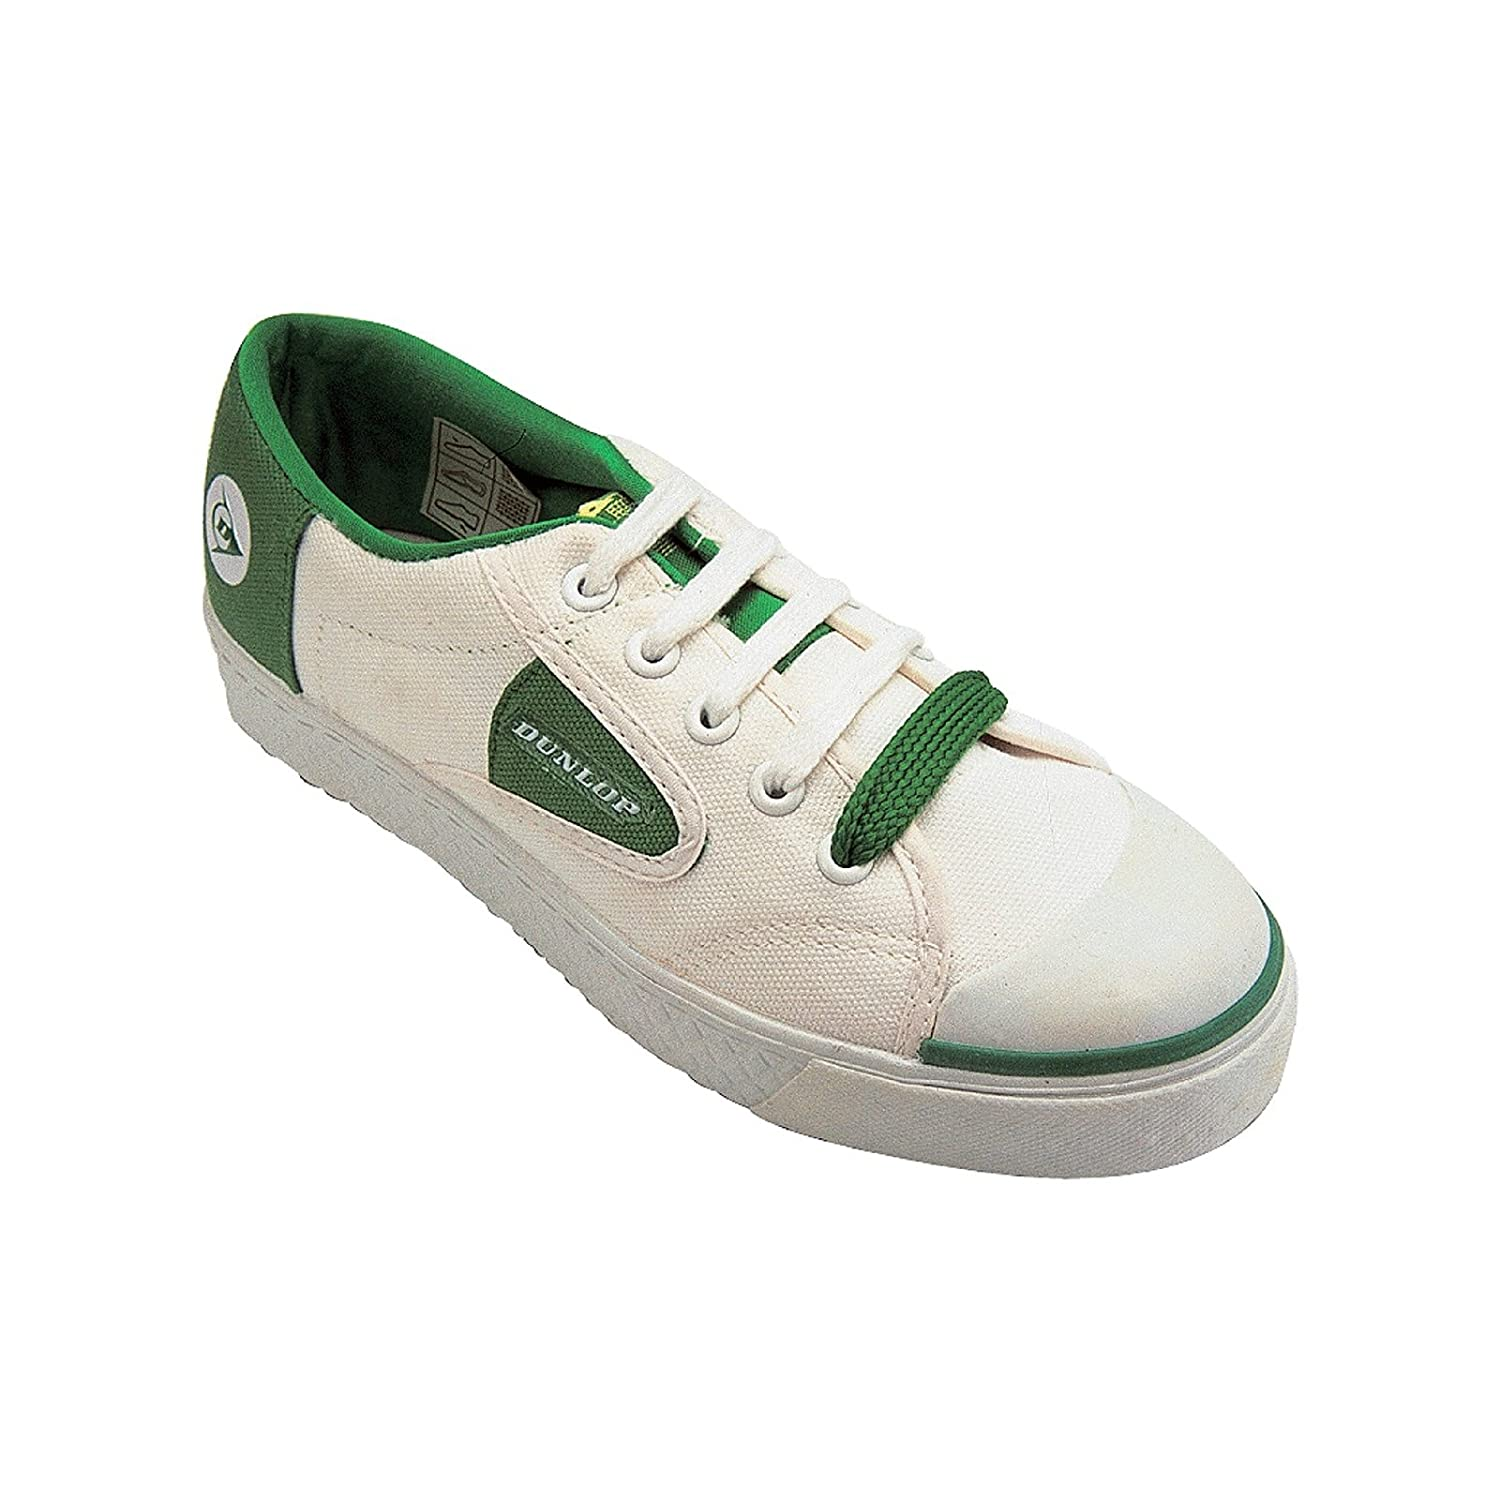 30%OFF Dunlop Unisex Green Flash Lace Up Casual Sneakers